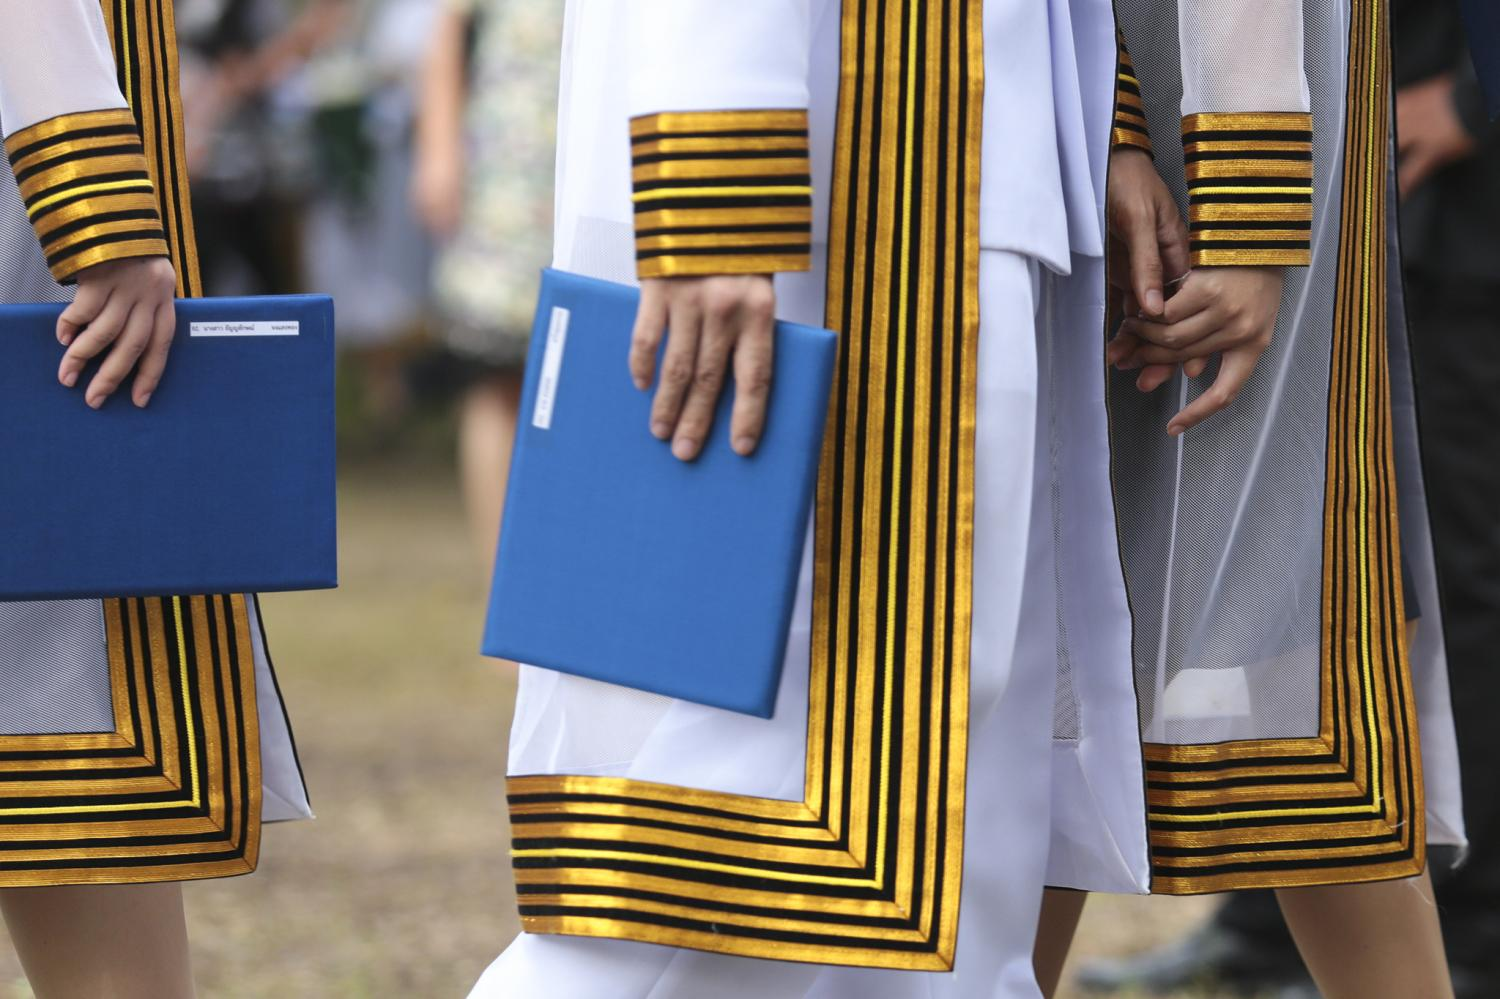 New Chulalongkorn graduates hold their degrees after a graduation ceremony.